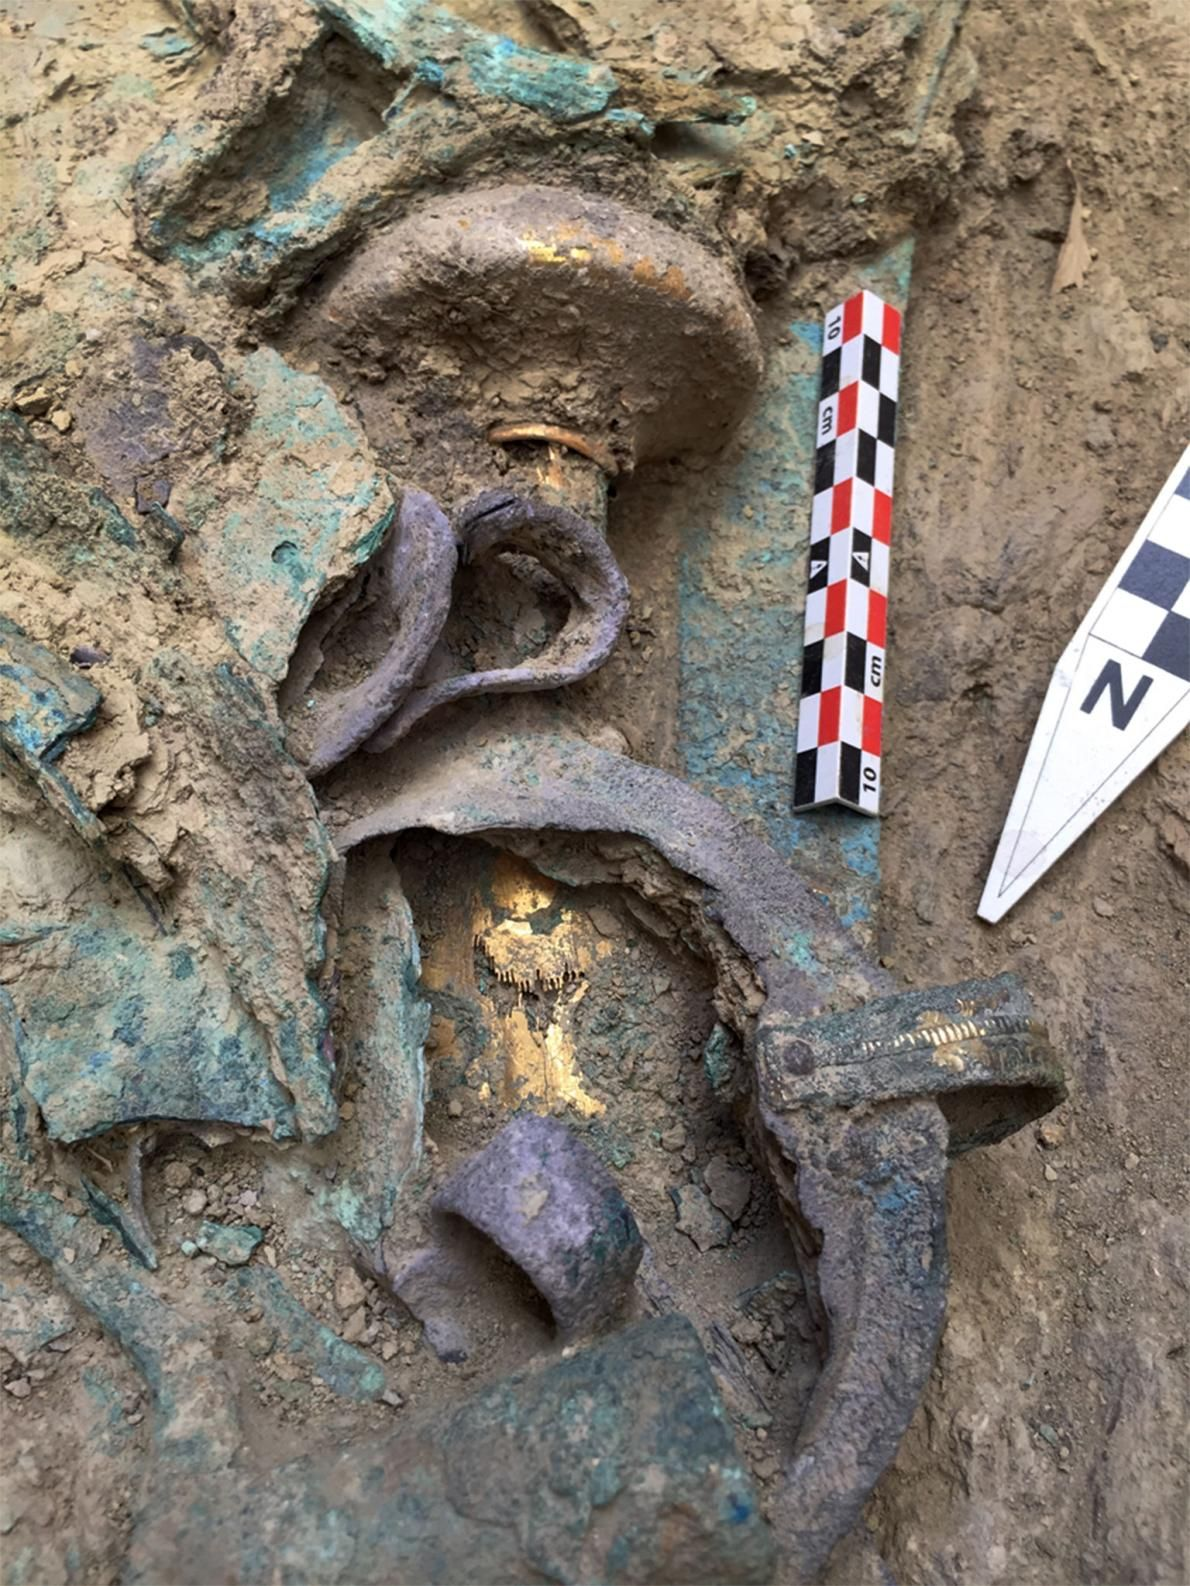 Rare Unlooted Grave of Wealthy Warrior Uncovered in Greece